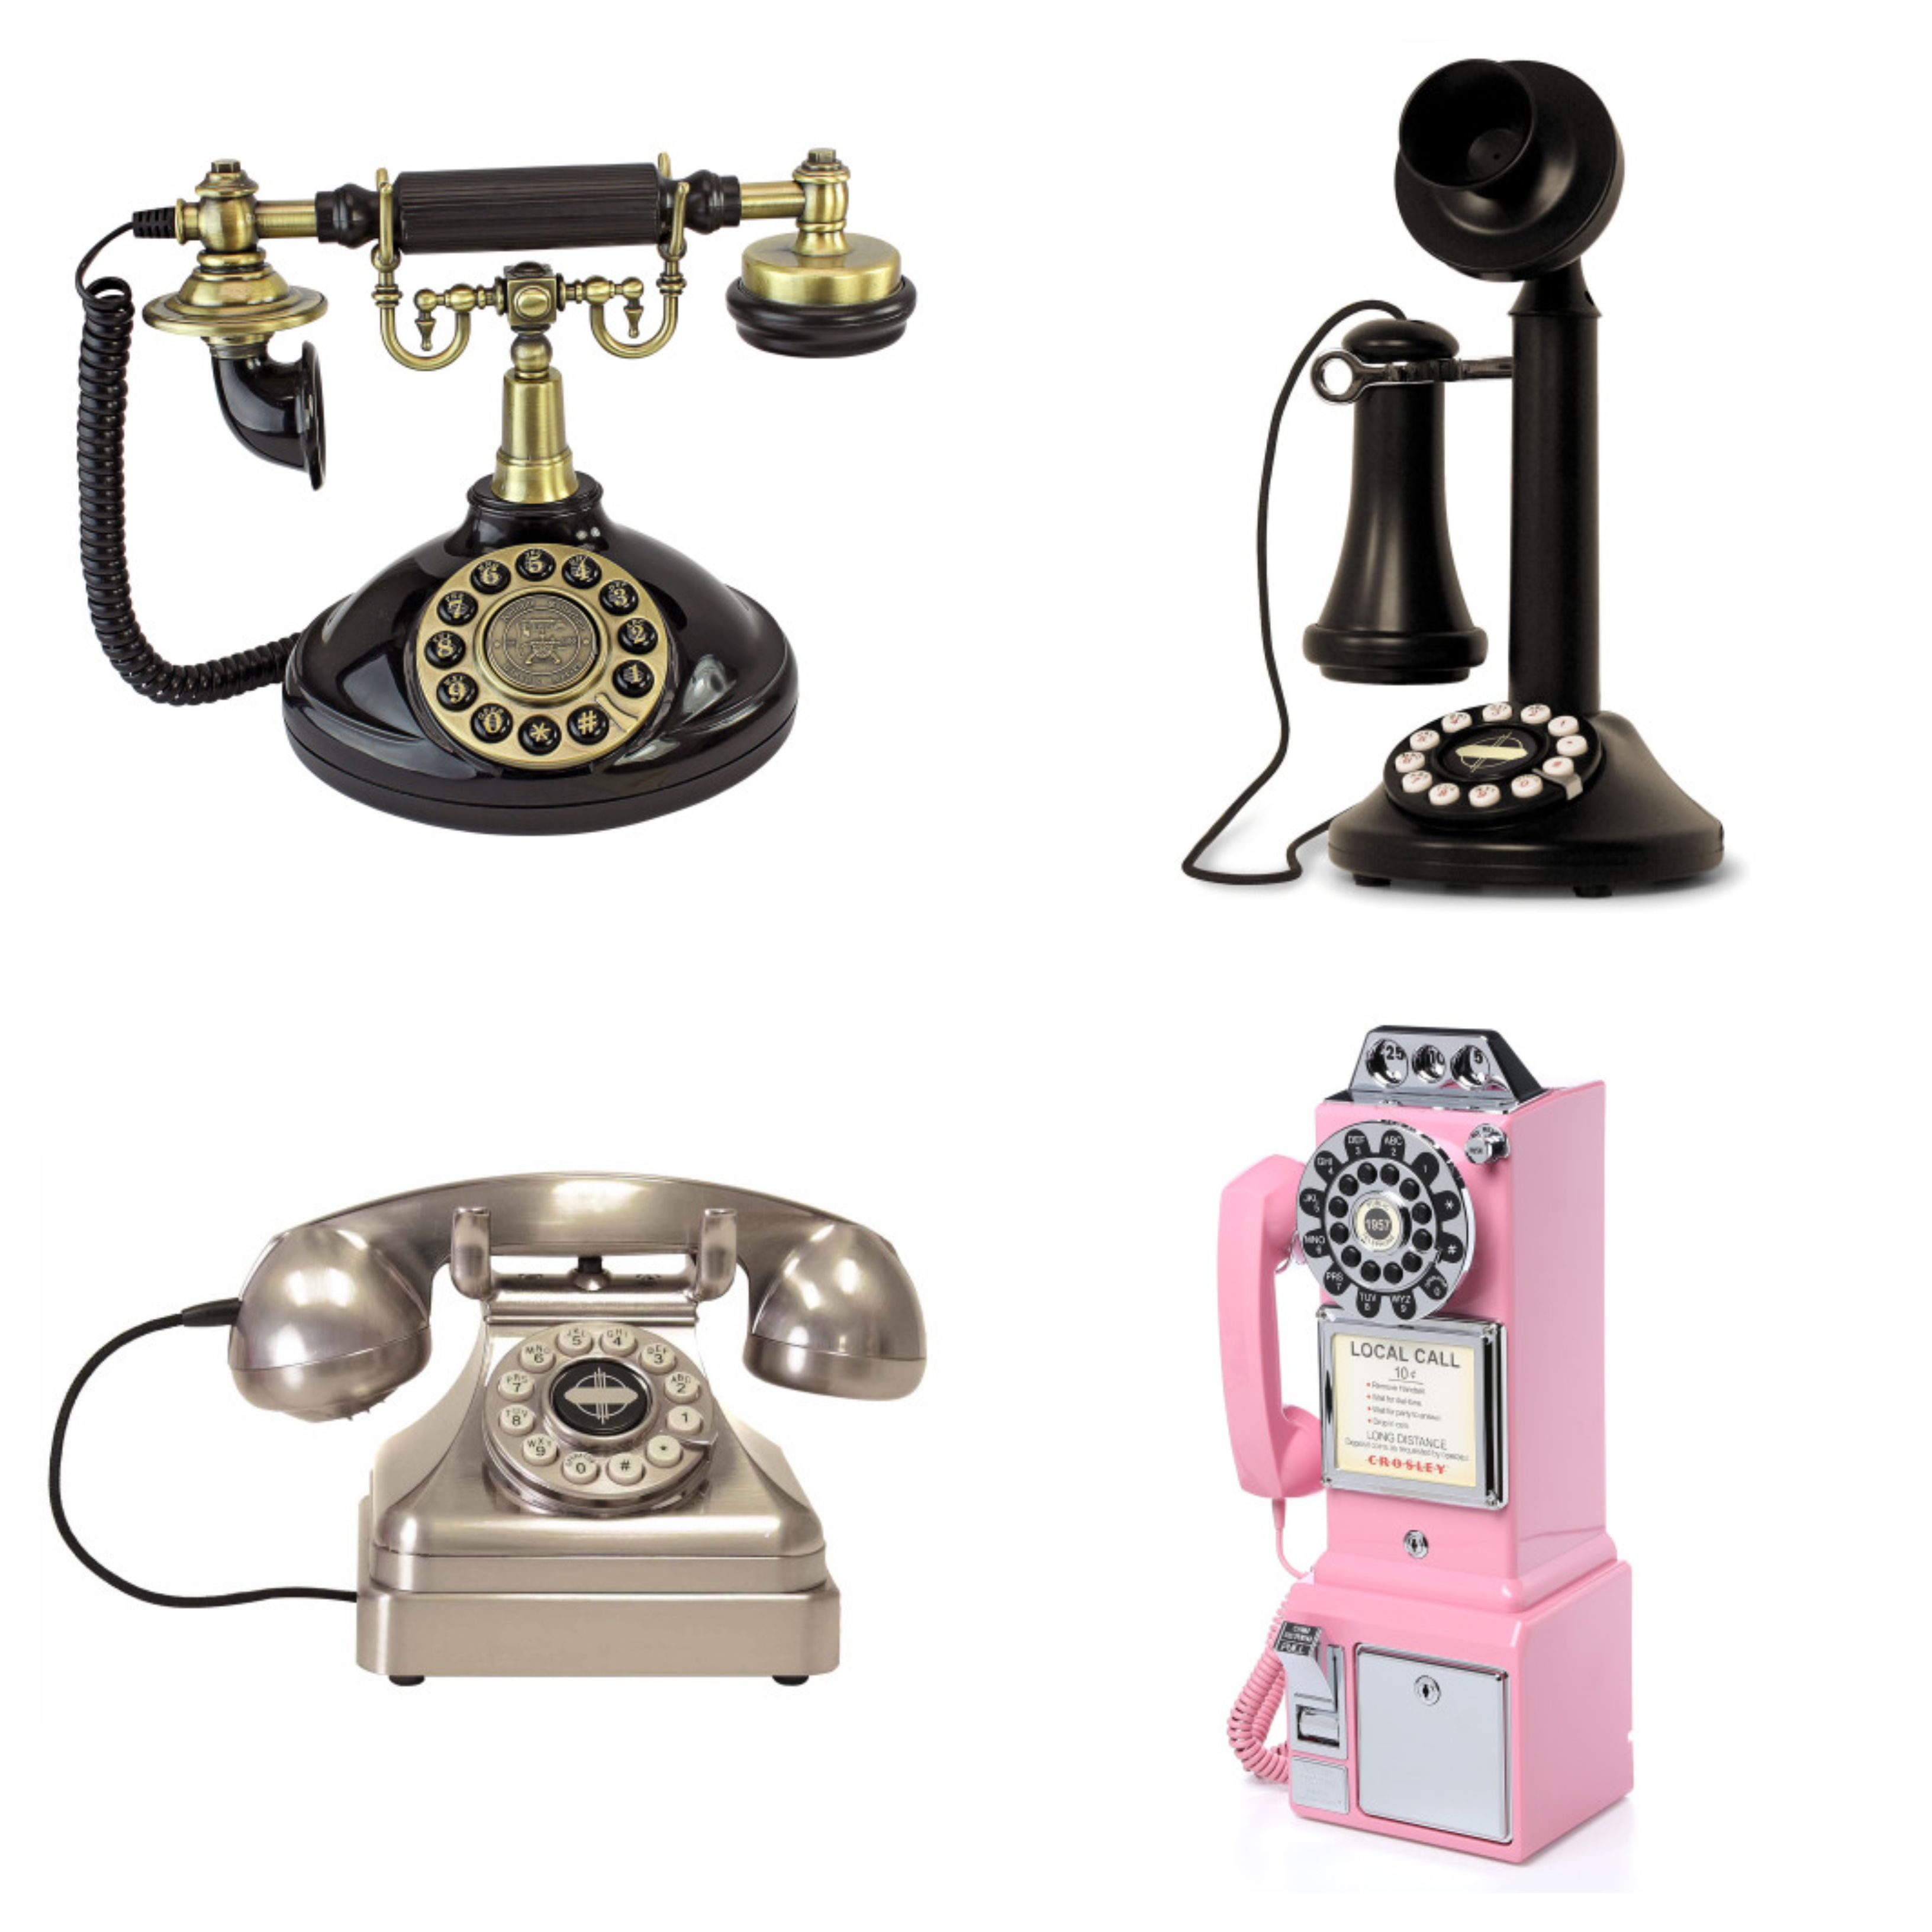 Fetefone Guestbook Select From A Variety Of Vintage Phone Styles Rent The Phone And Record A Pre Recorded Message Audio Guest Book Phone Fashion Guest Book